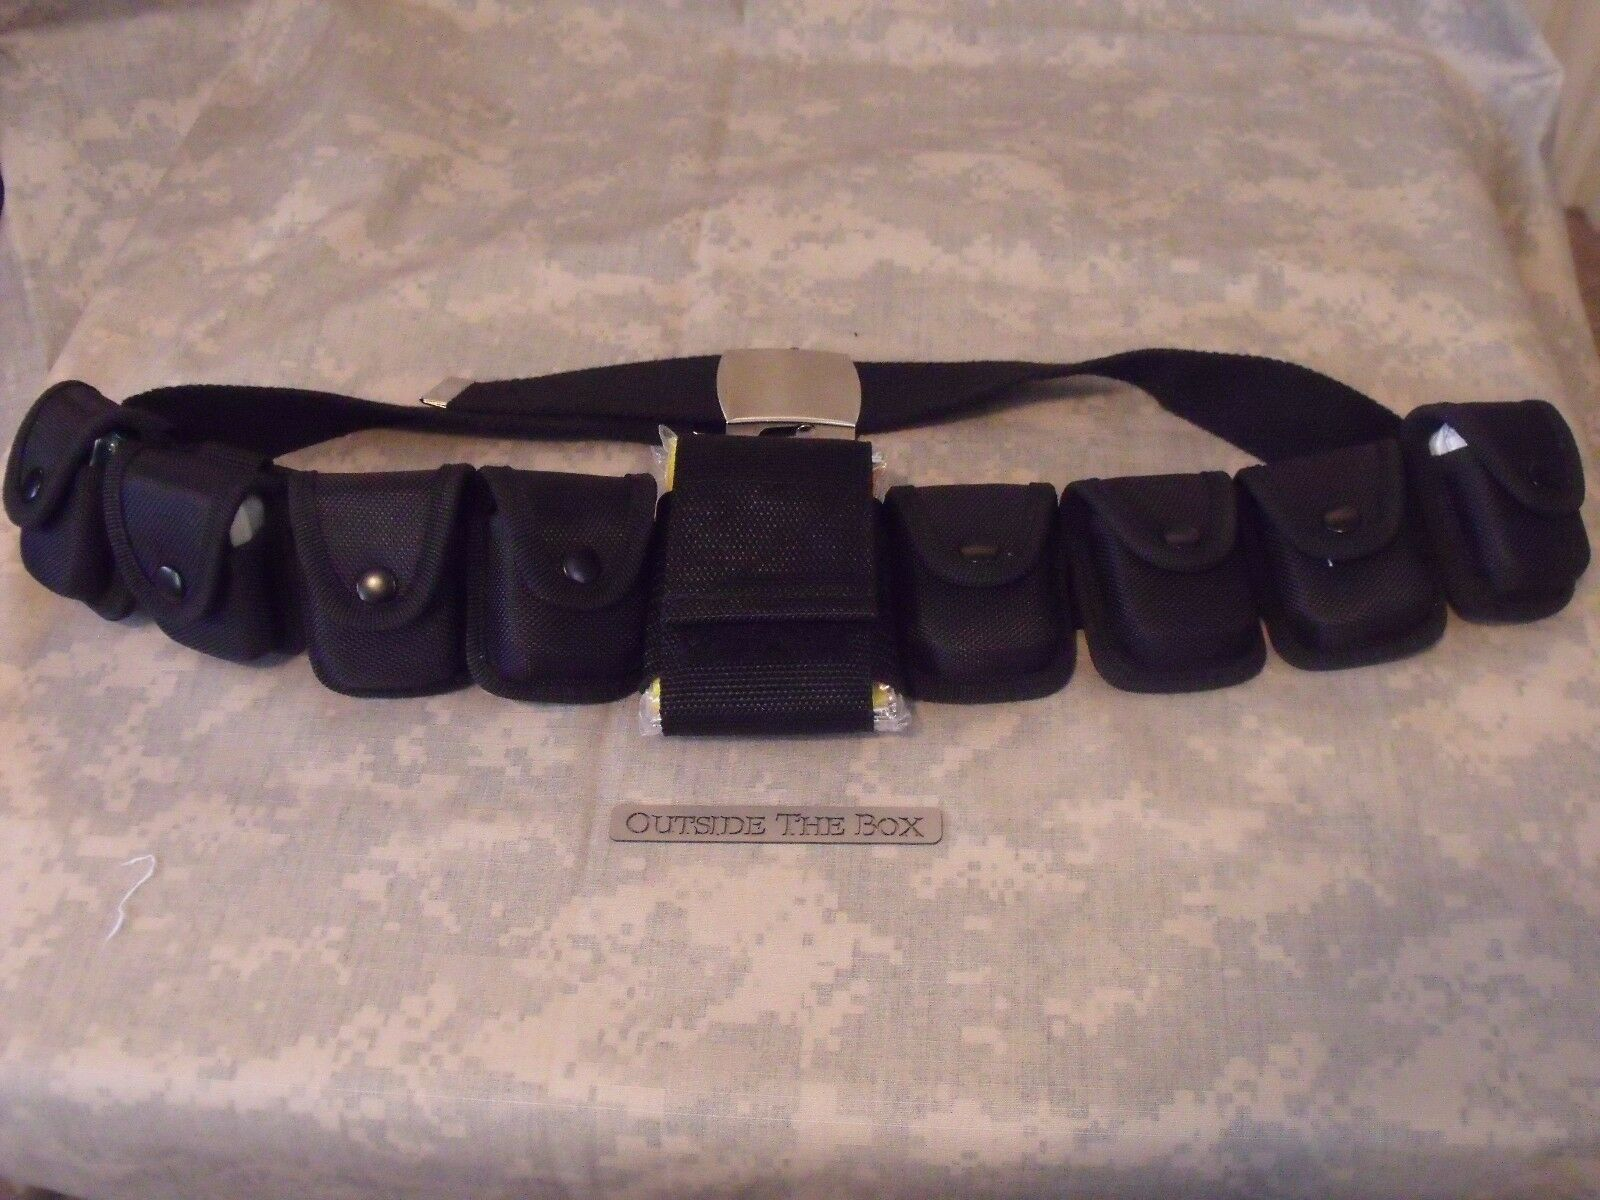 Emergency Survival     Utility Belt Survival Kit System   BRAND NEW ITEM   best choice